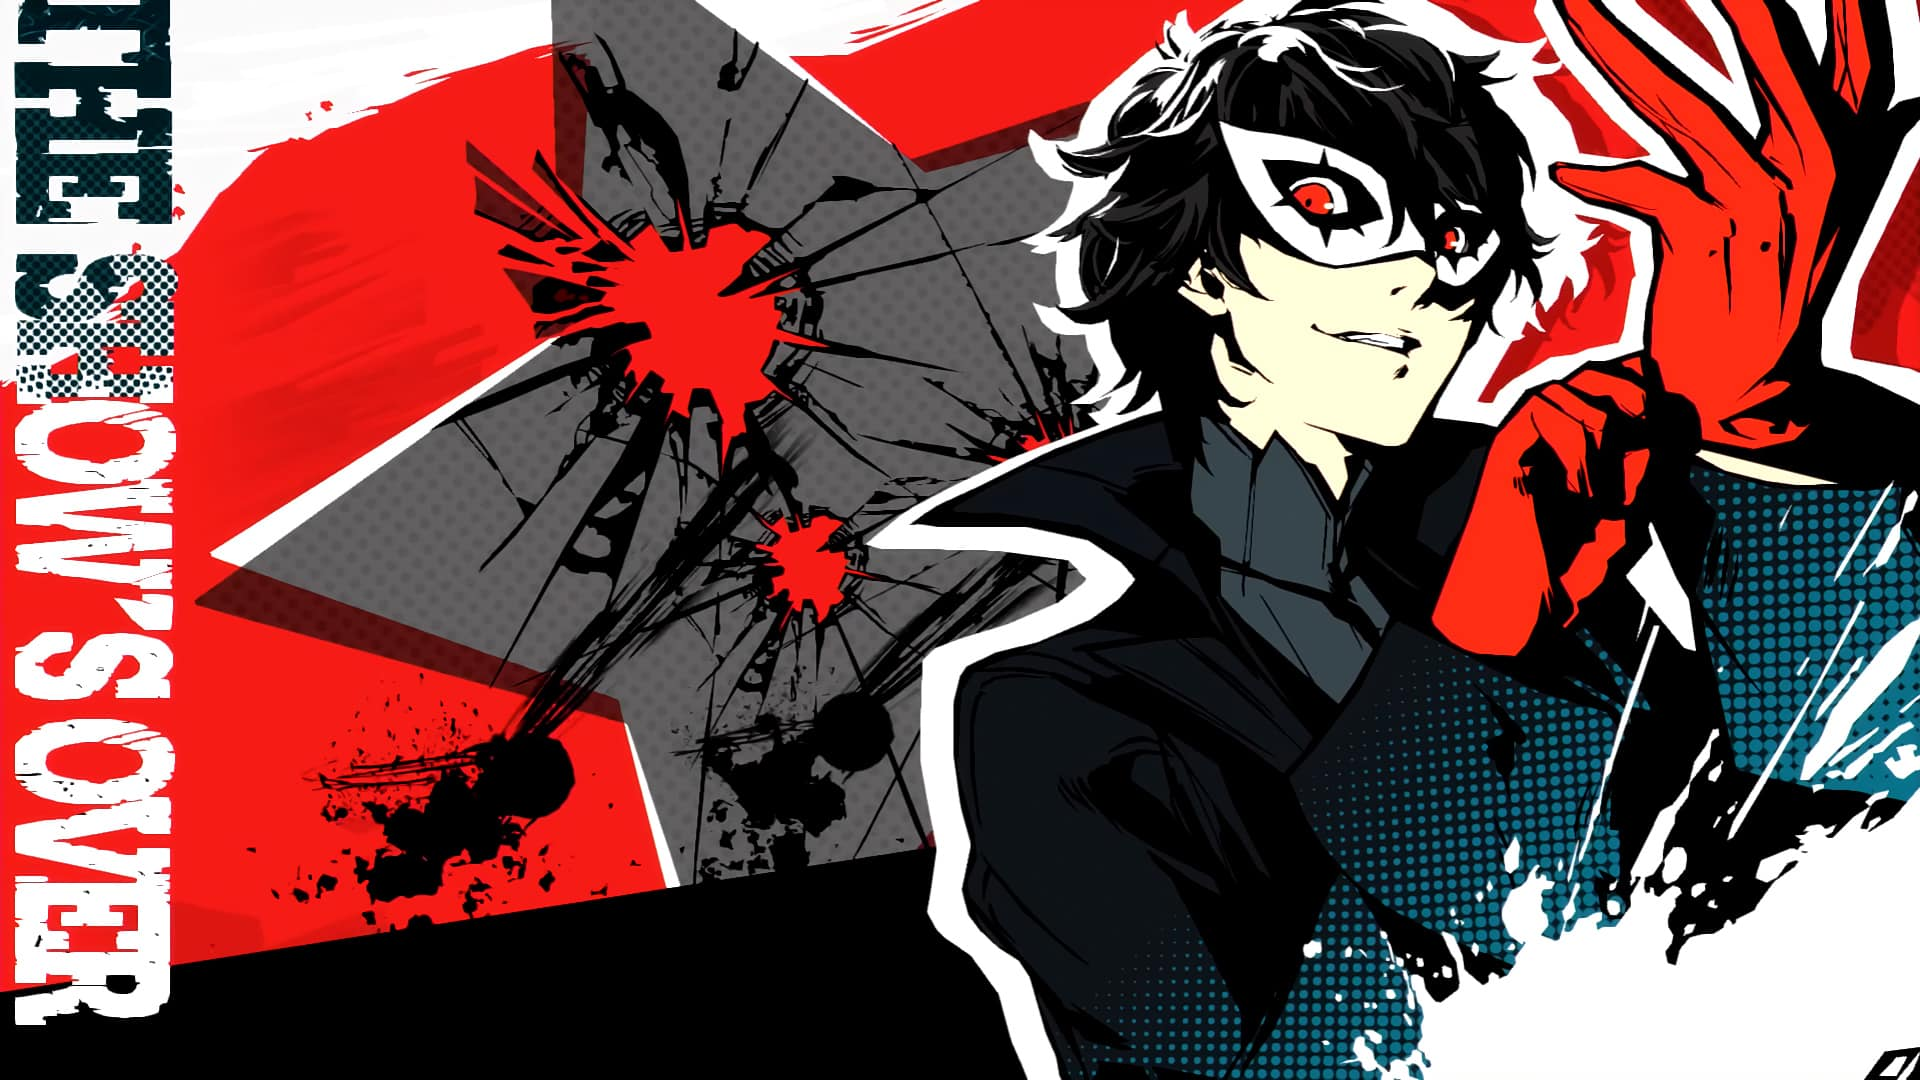 Persona 5 Tous Les Wallpapers Hd Des All Out Attacks Jeux